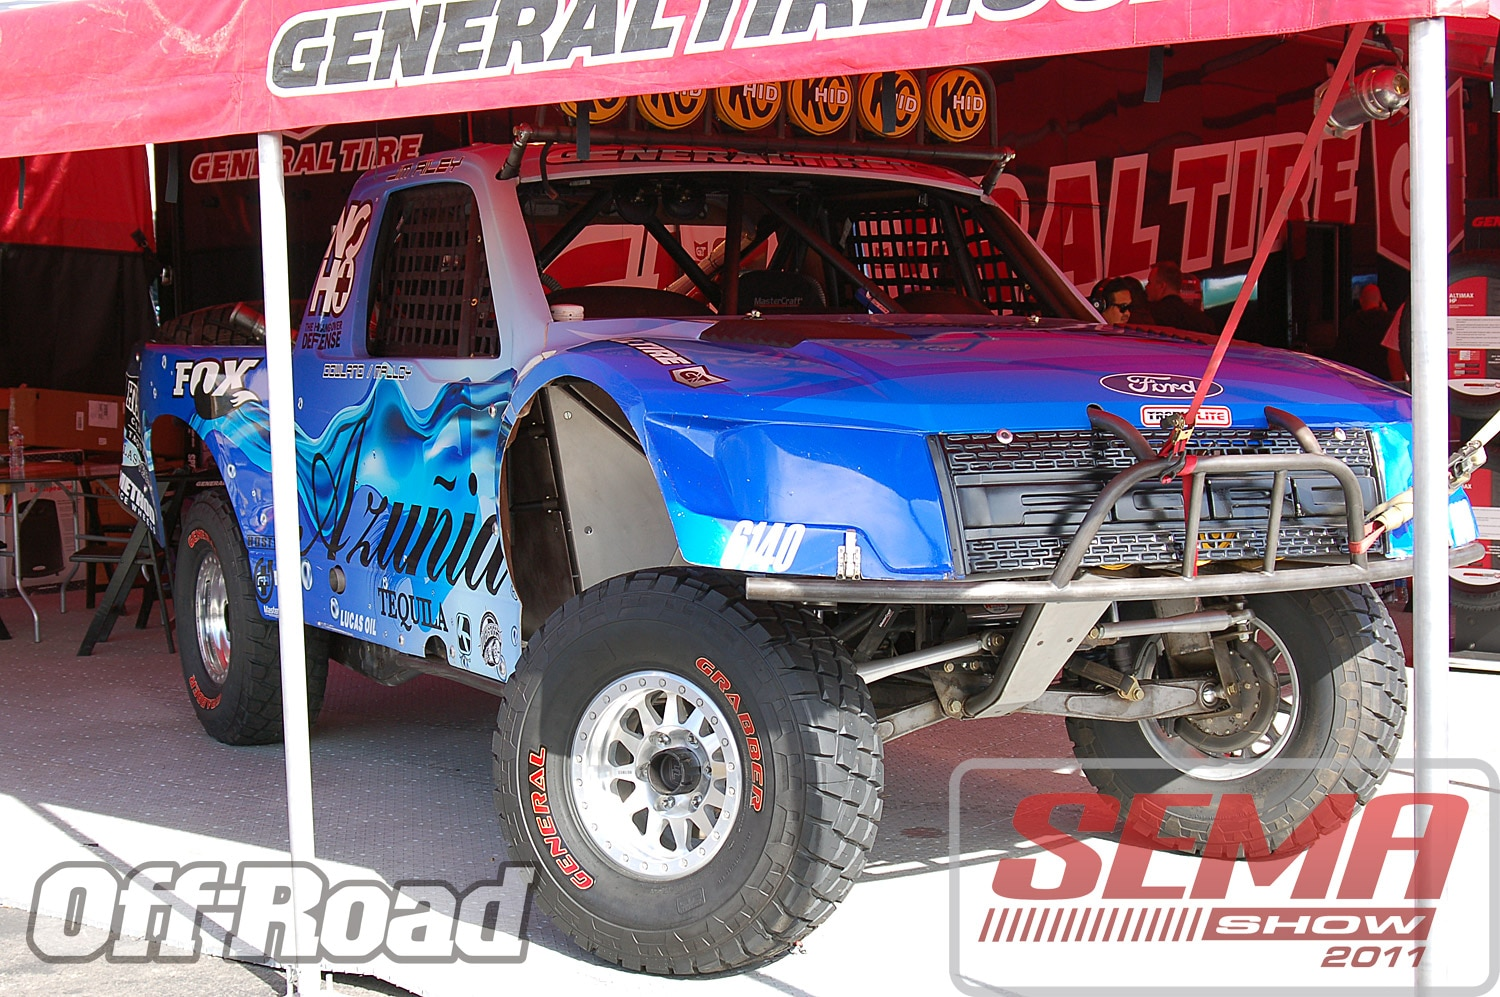 102312or 0020+2011 sema show+off road trucks and products